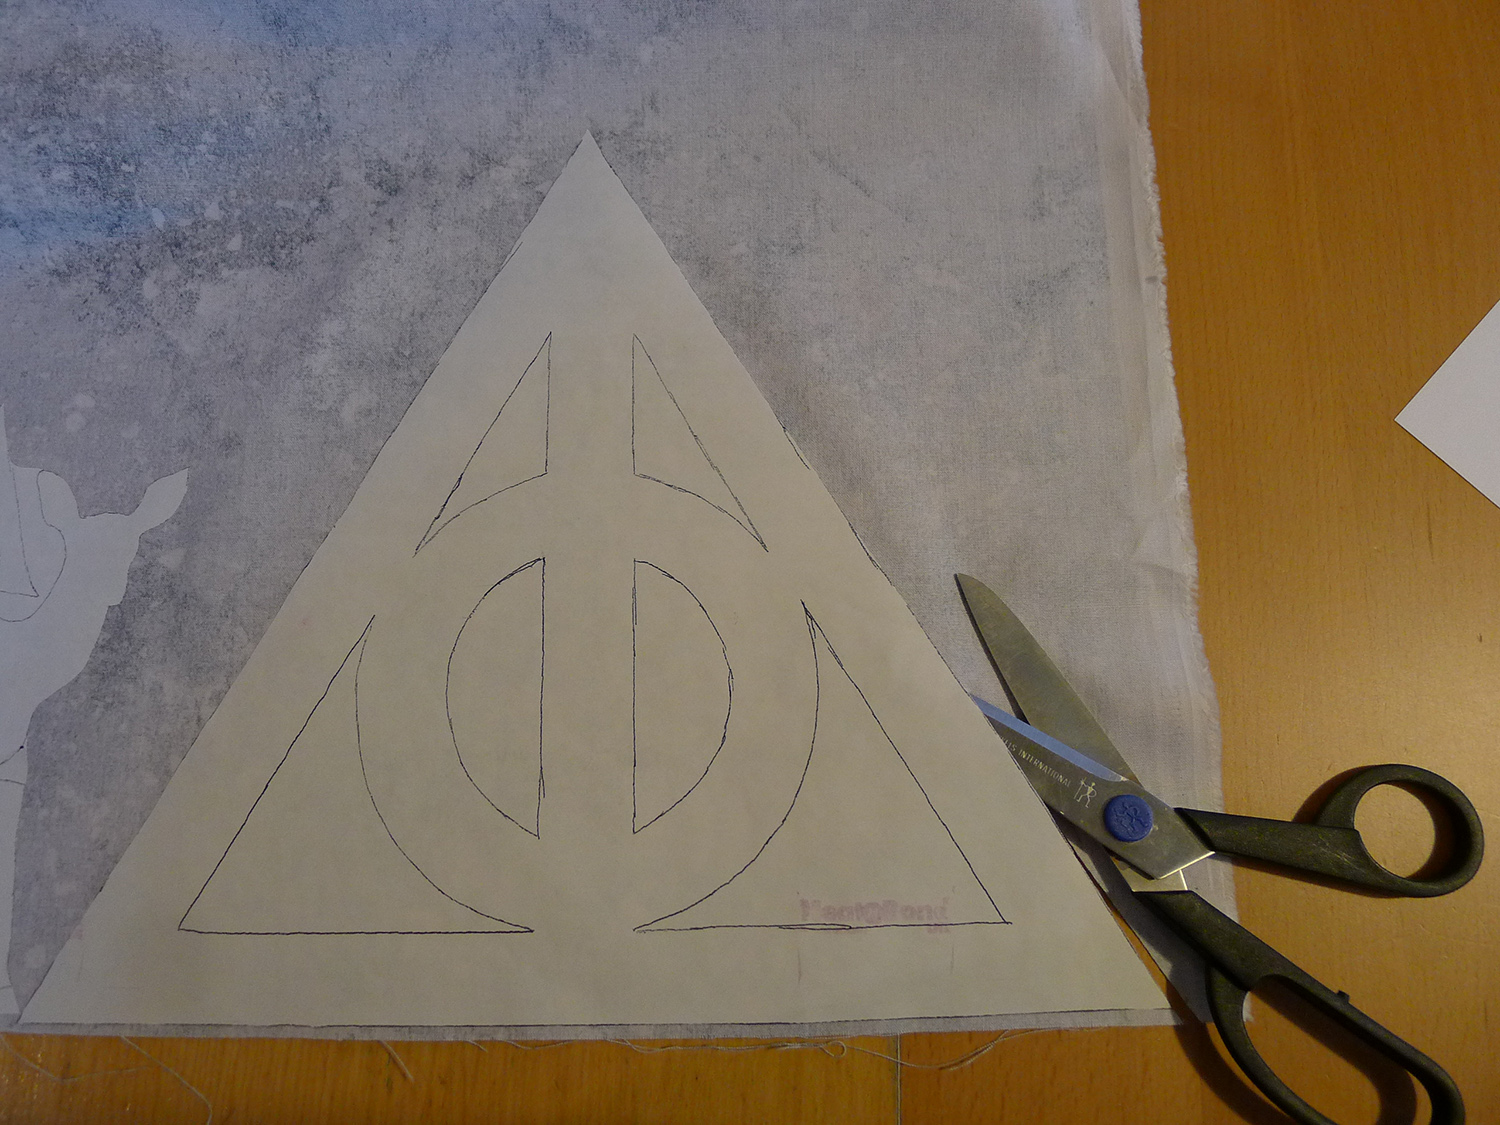 Cool Wallpaper Harry Potter Triangle - 006-Harry-Potter-Deathly-Hallows-Pillow  Pic_825176.jpg